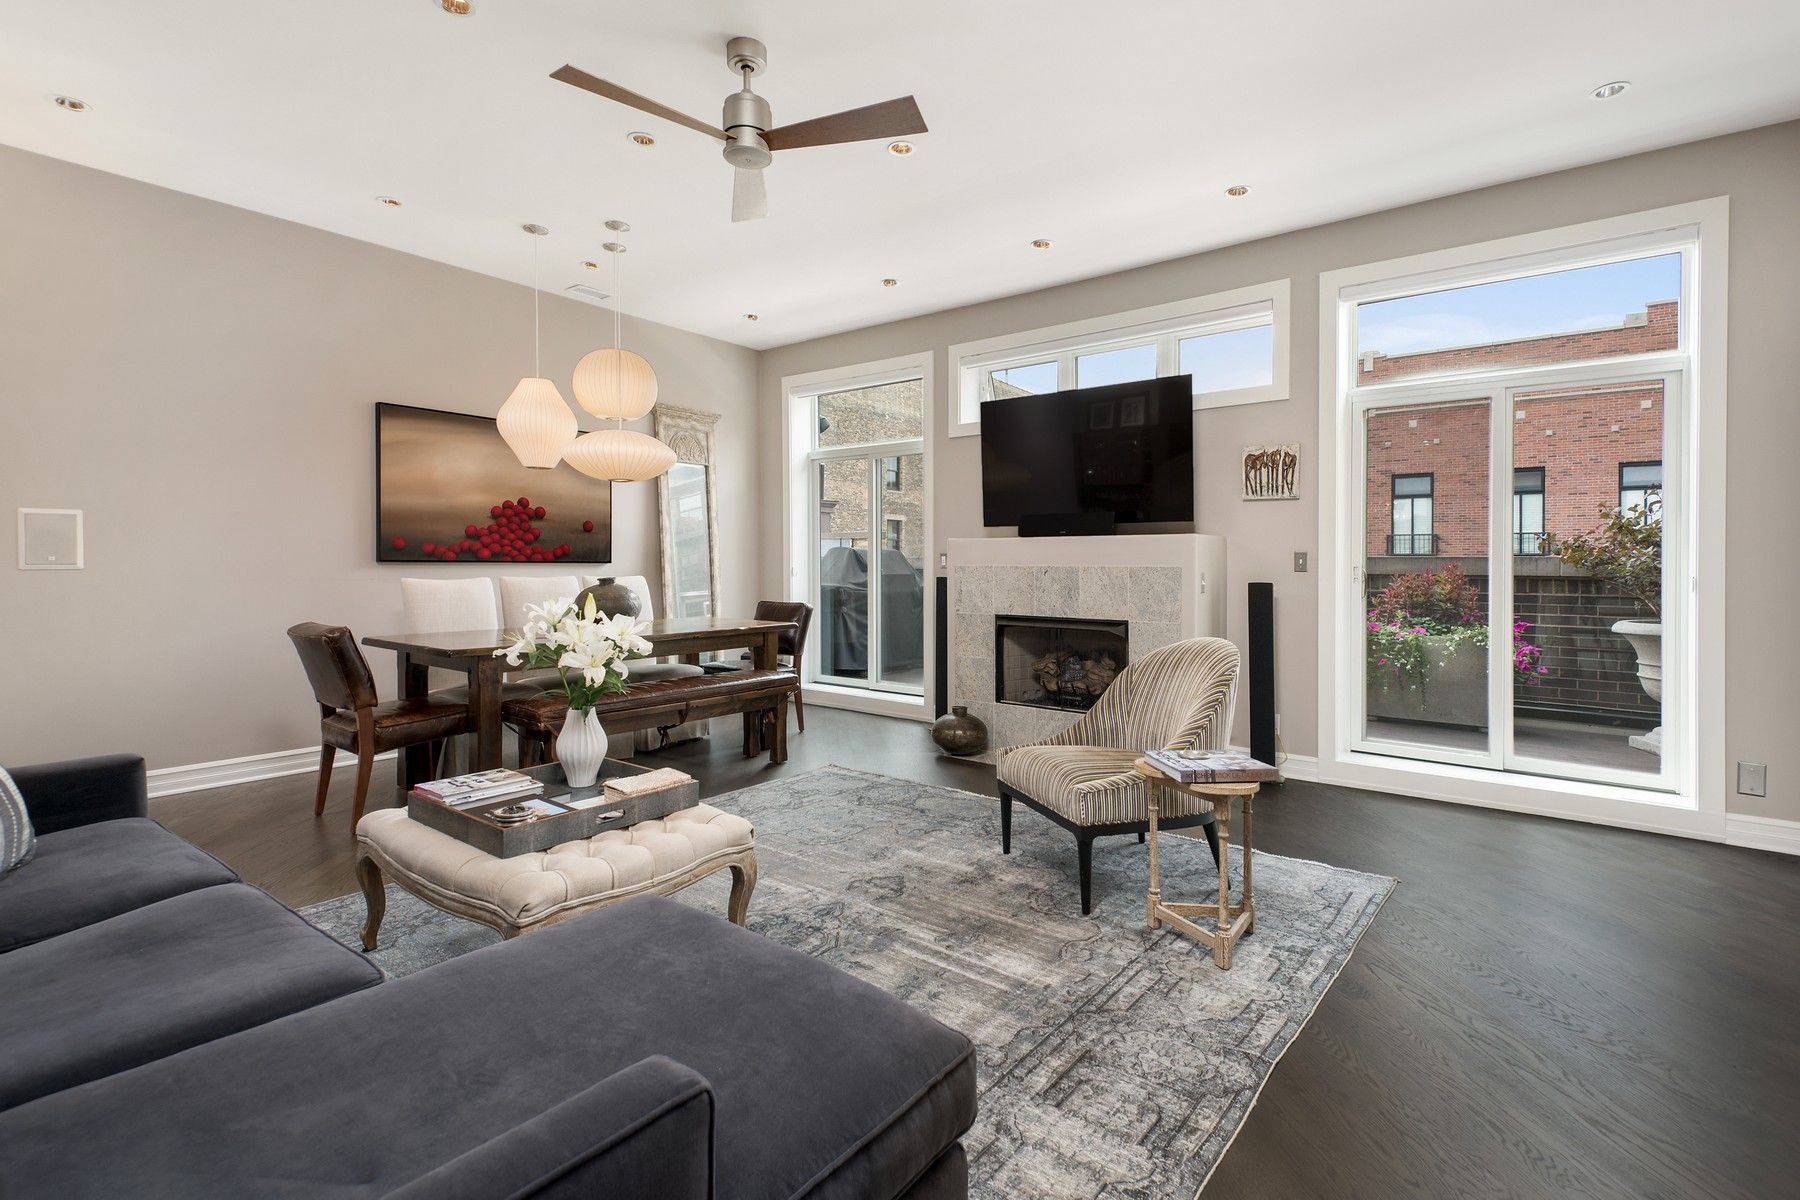 Single Family Home for Sale at Sophisticated Oasis in Heart of Bucktown 1631 N Milwaukee Avenue Unit 2, Logan Square, Chicago, Illinois, 60647 United States